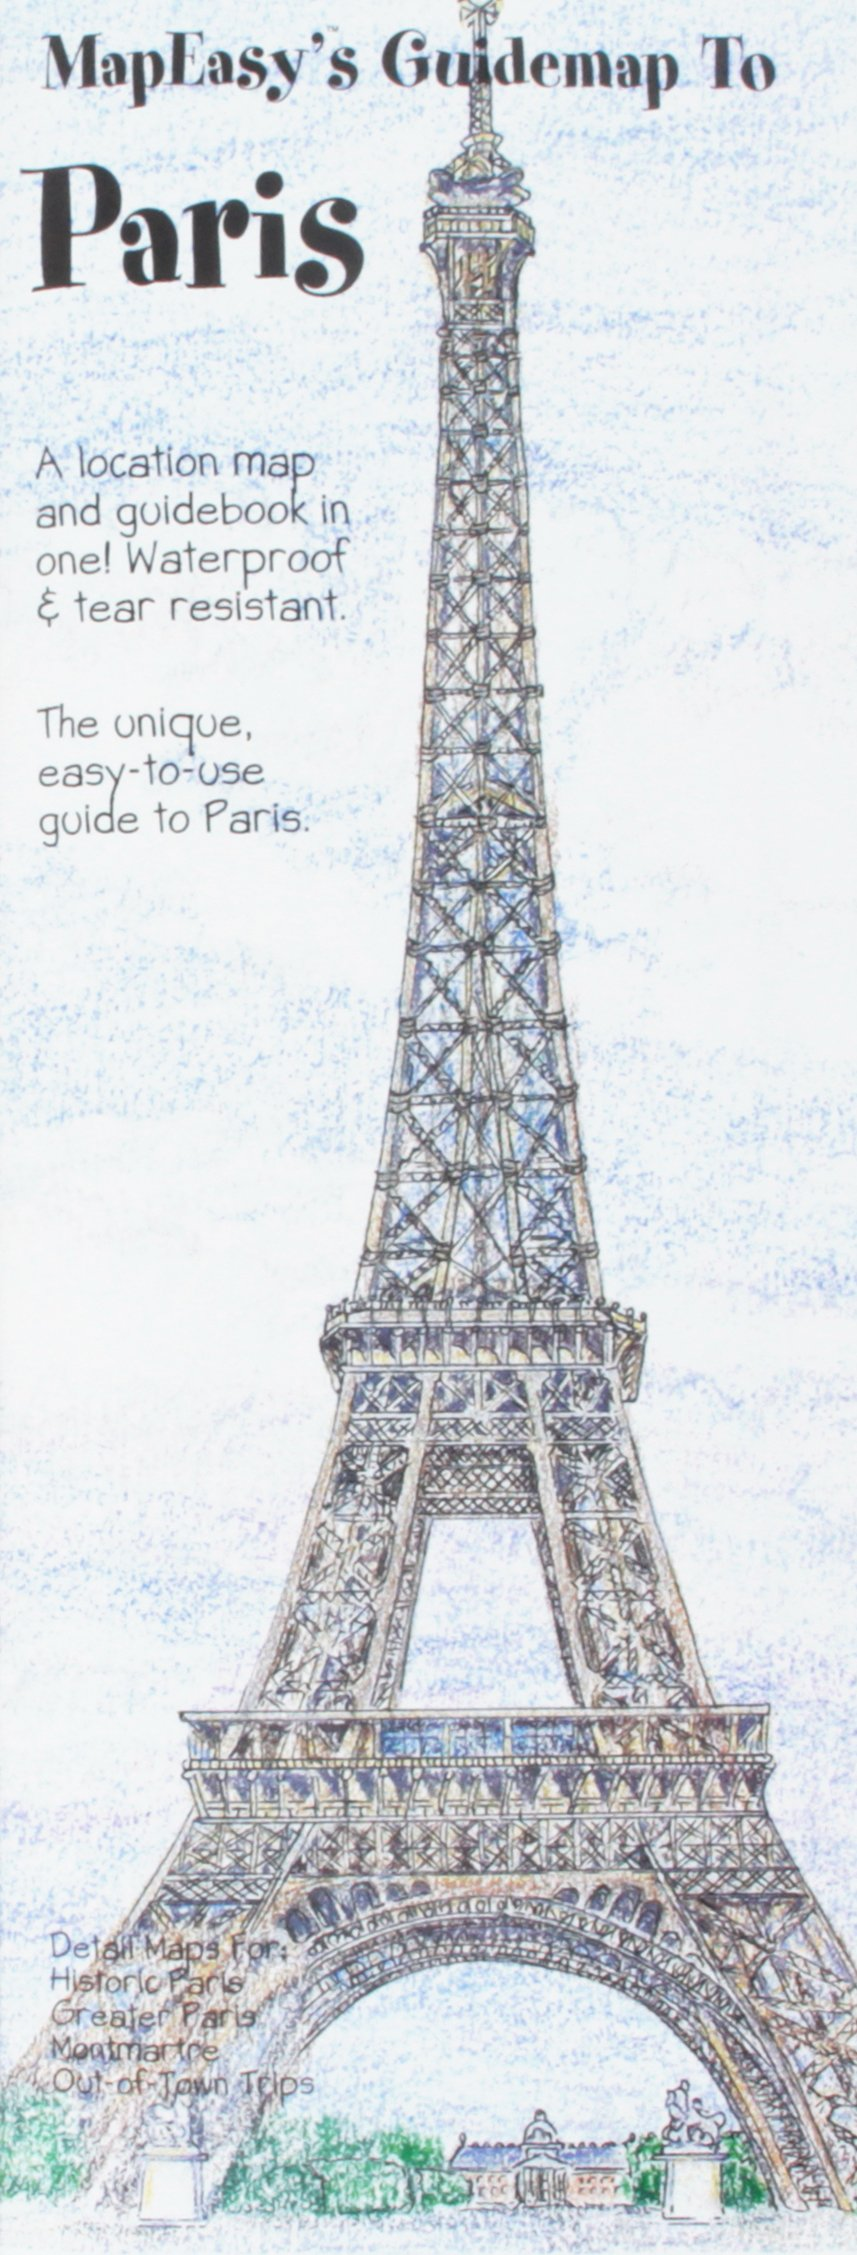 Download MapEasy's Guidemap to Paris PDF